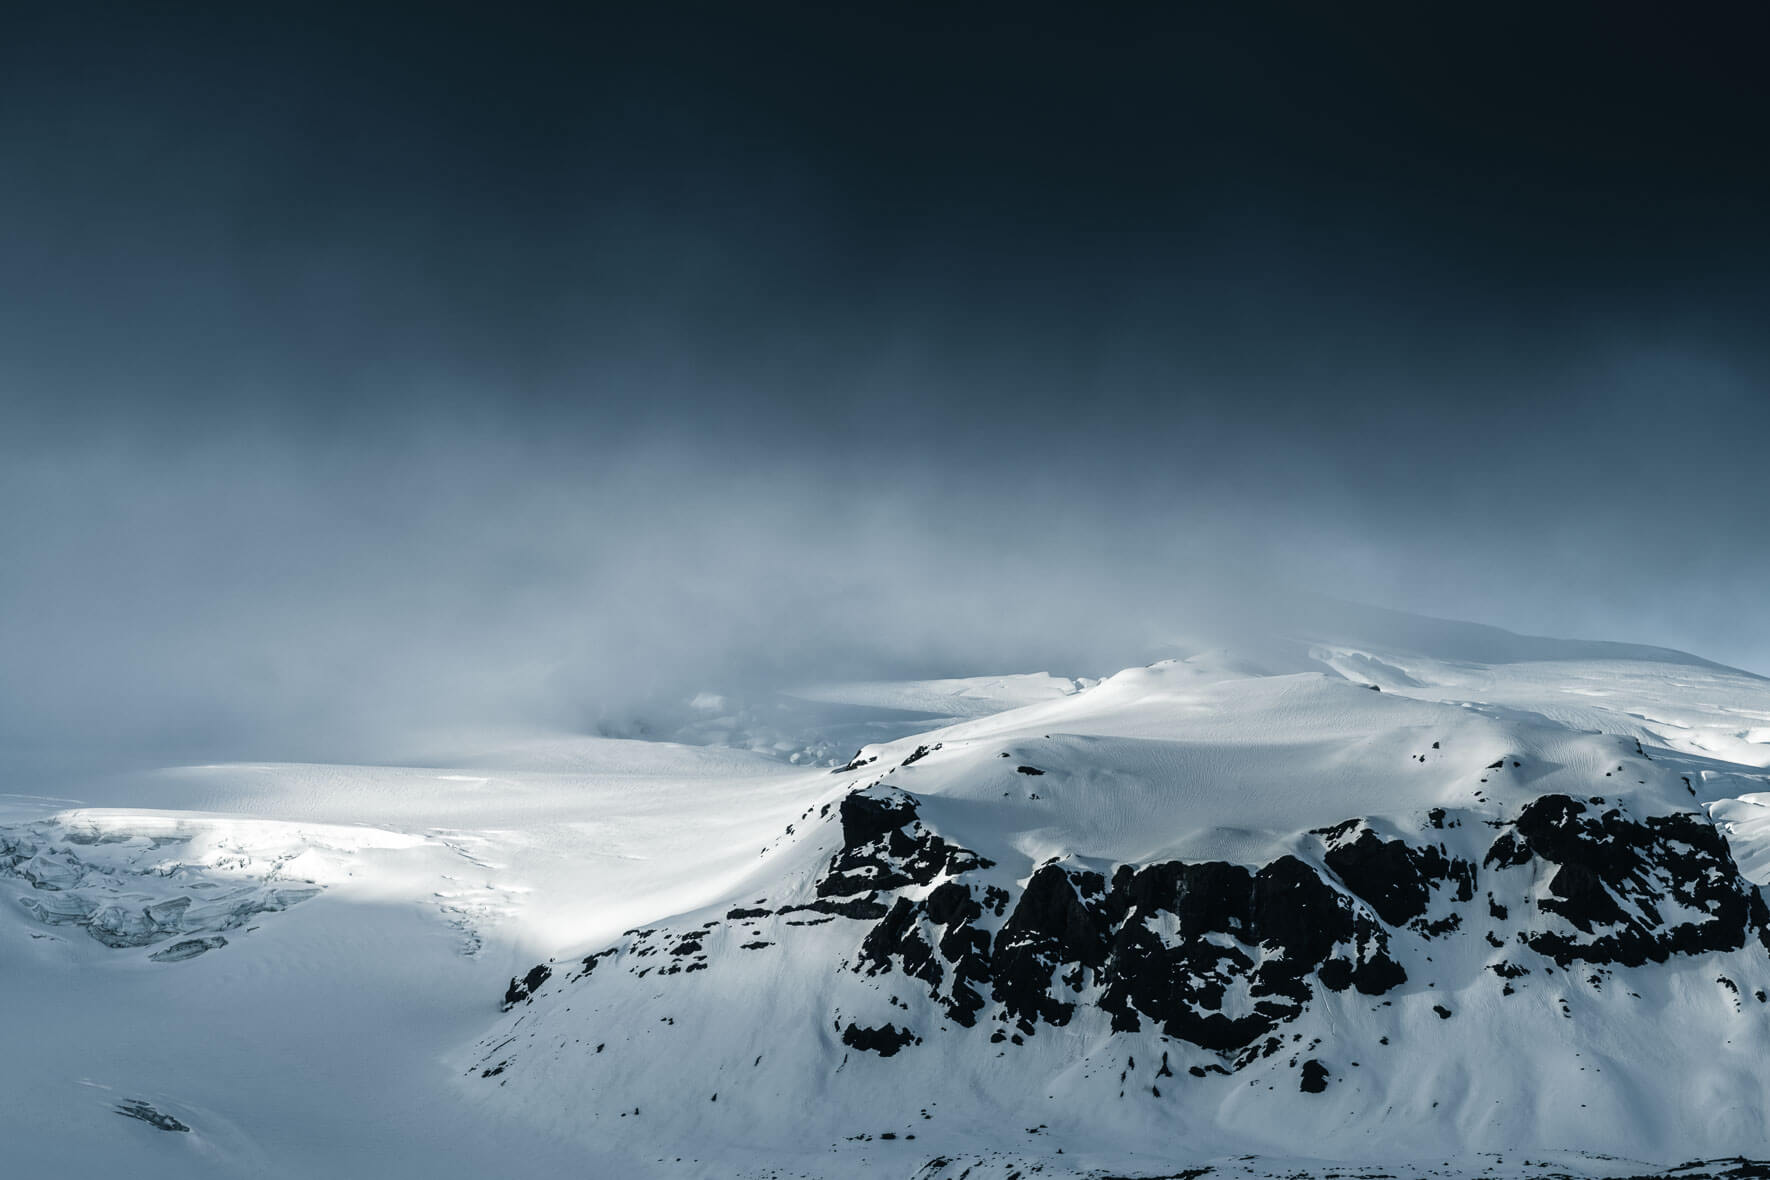 Northlandscapes – Fine art landscape photography of the North by Jan Erik Waider